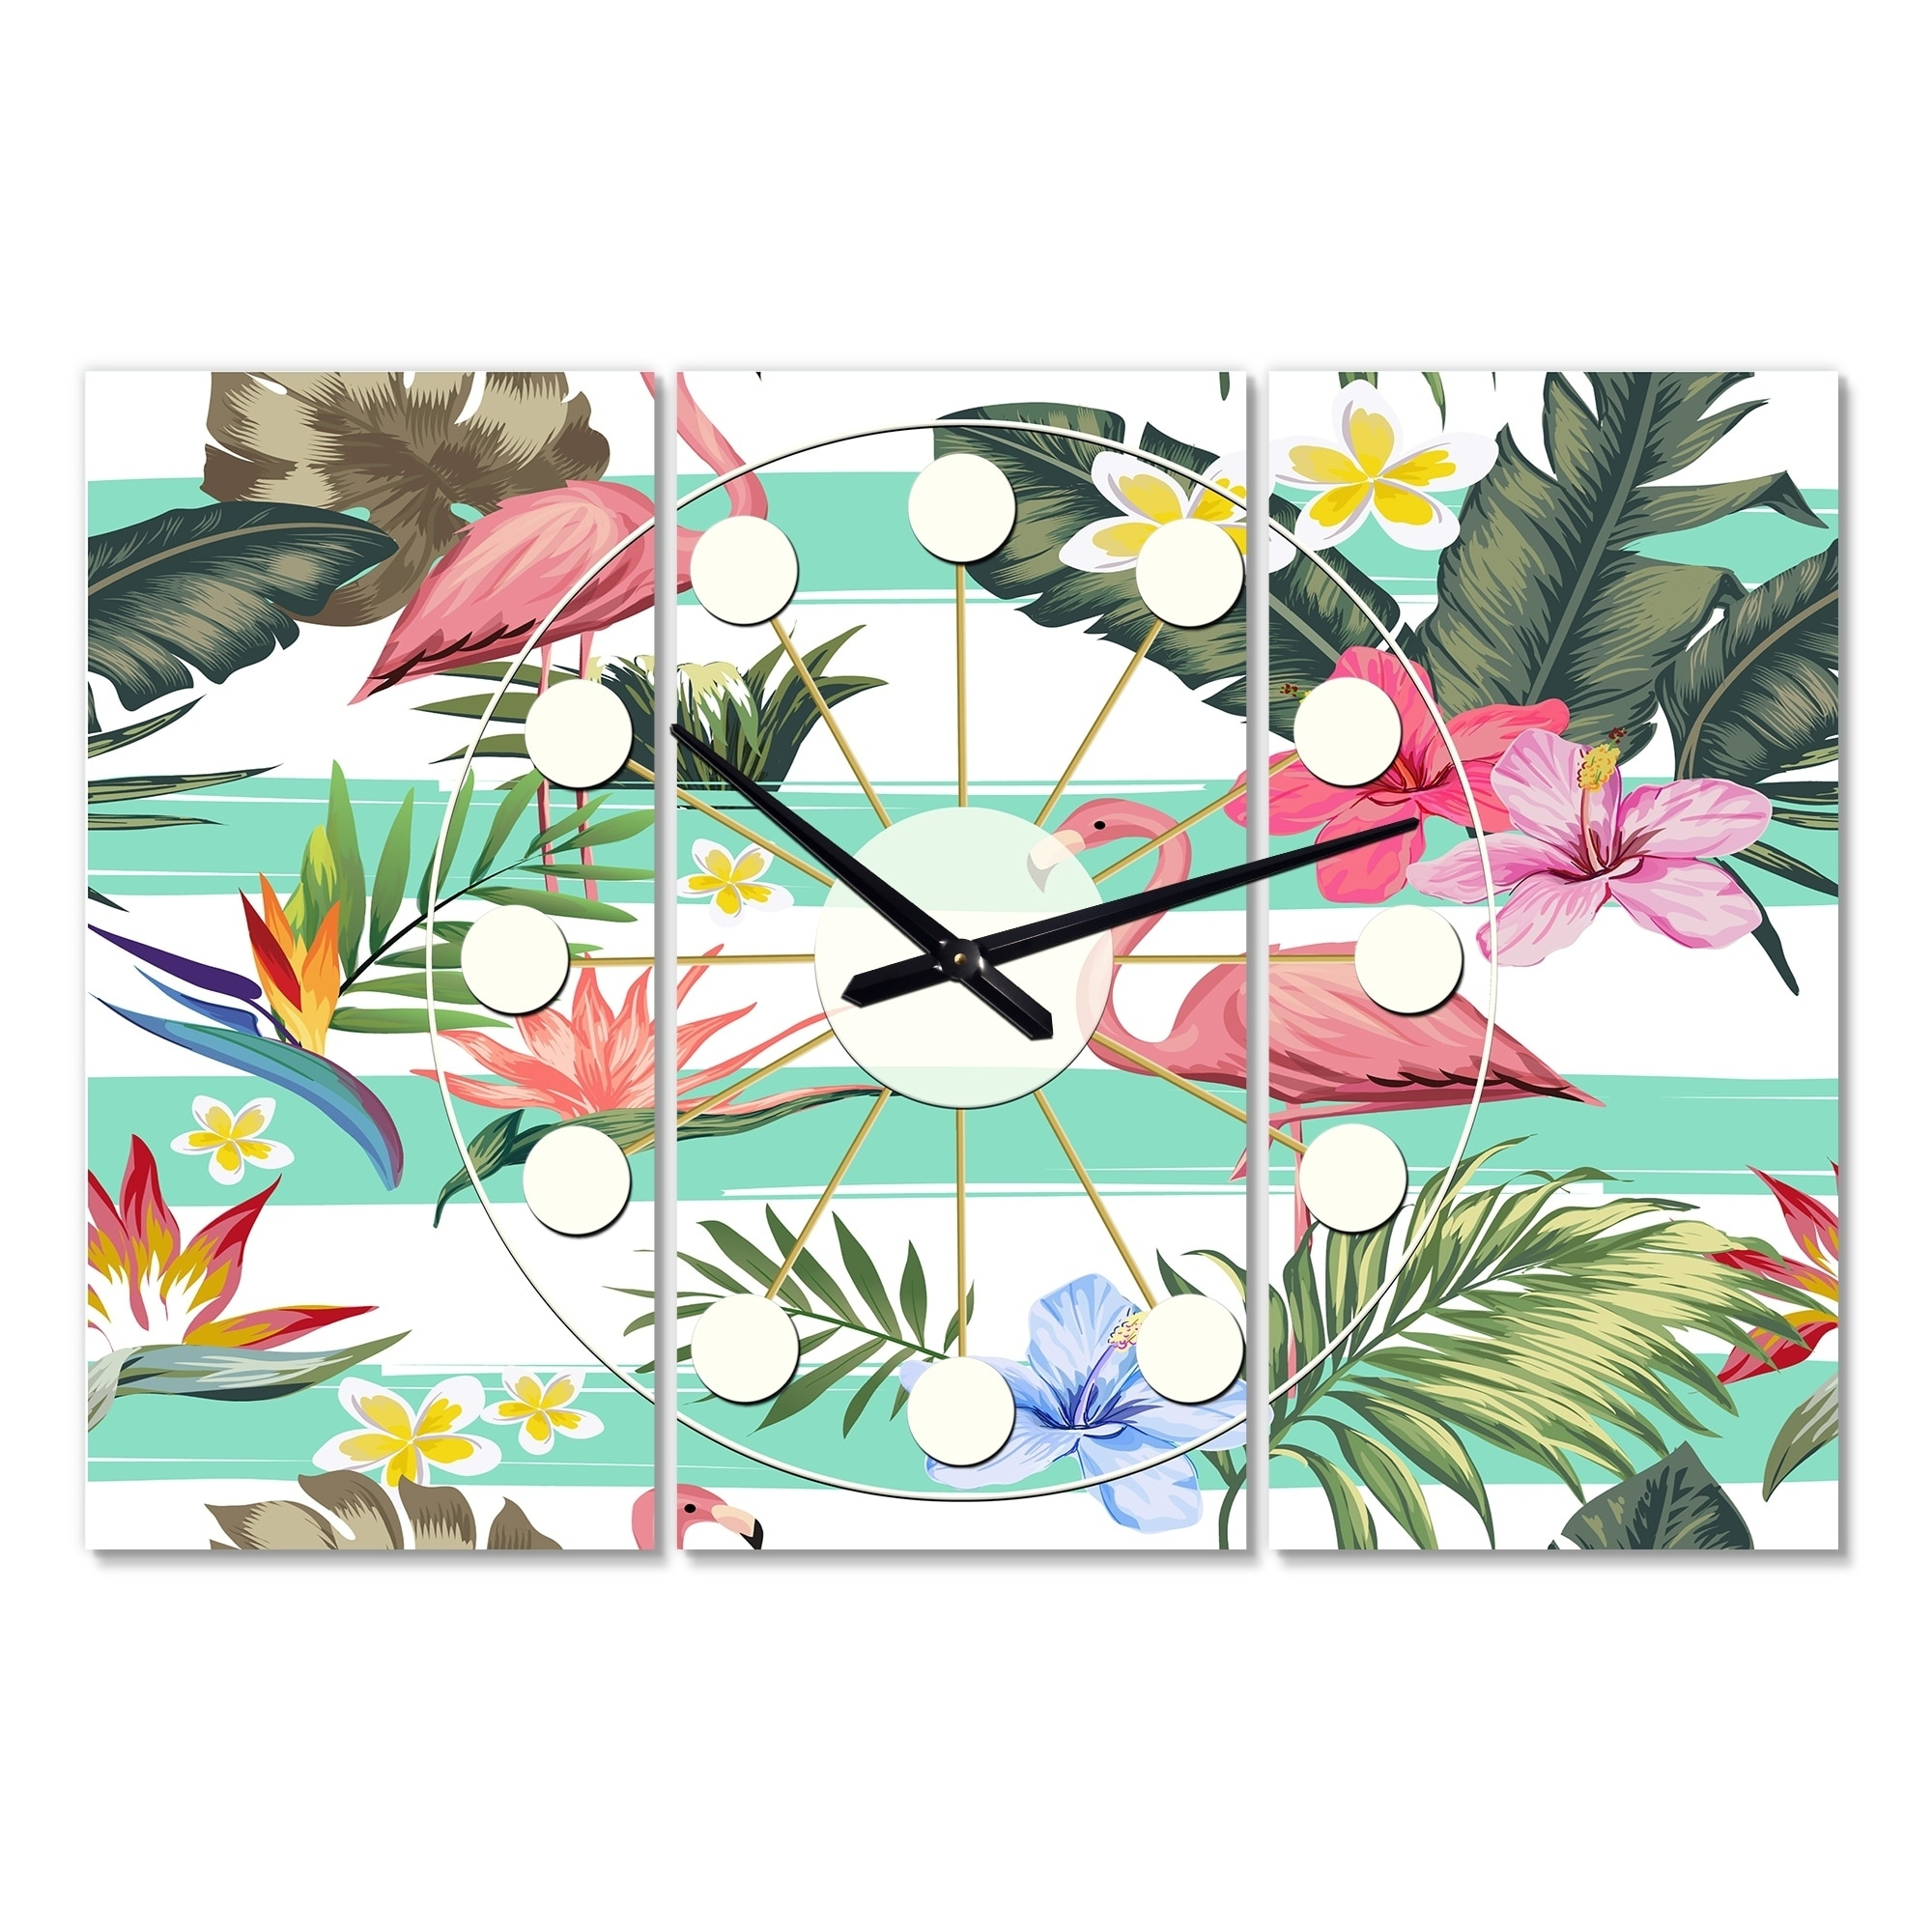 Designart Tropical Botanicals Flowers And Flamingo Oversized Mid Century Wall Clock 3 Panels Overstock 28735779